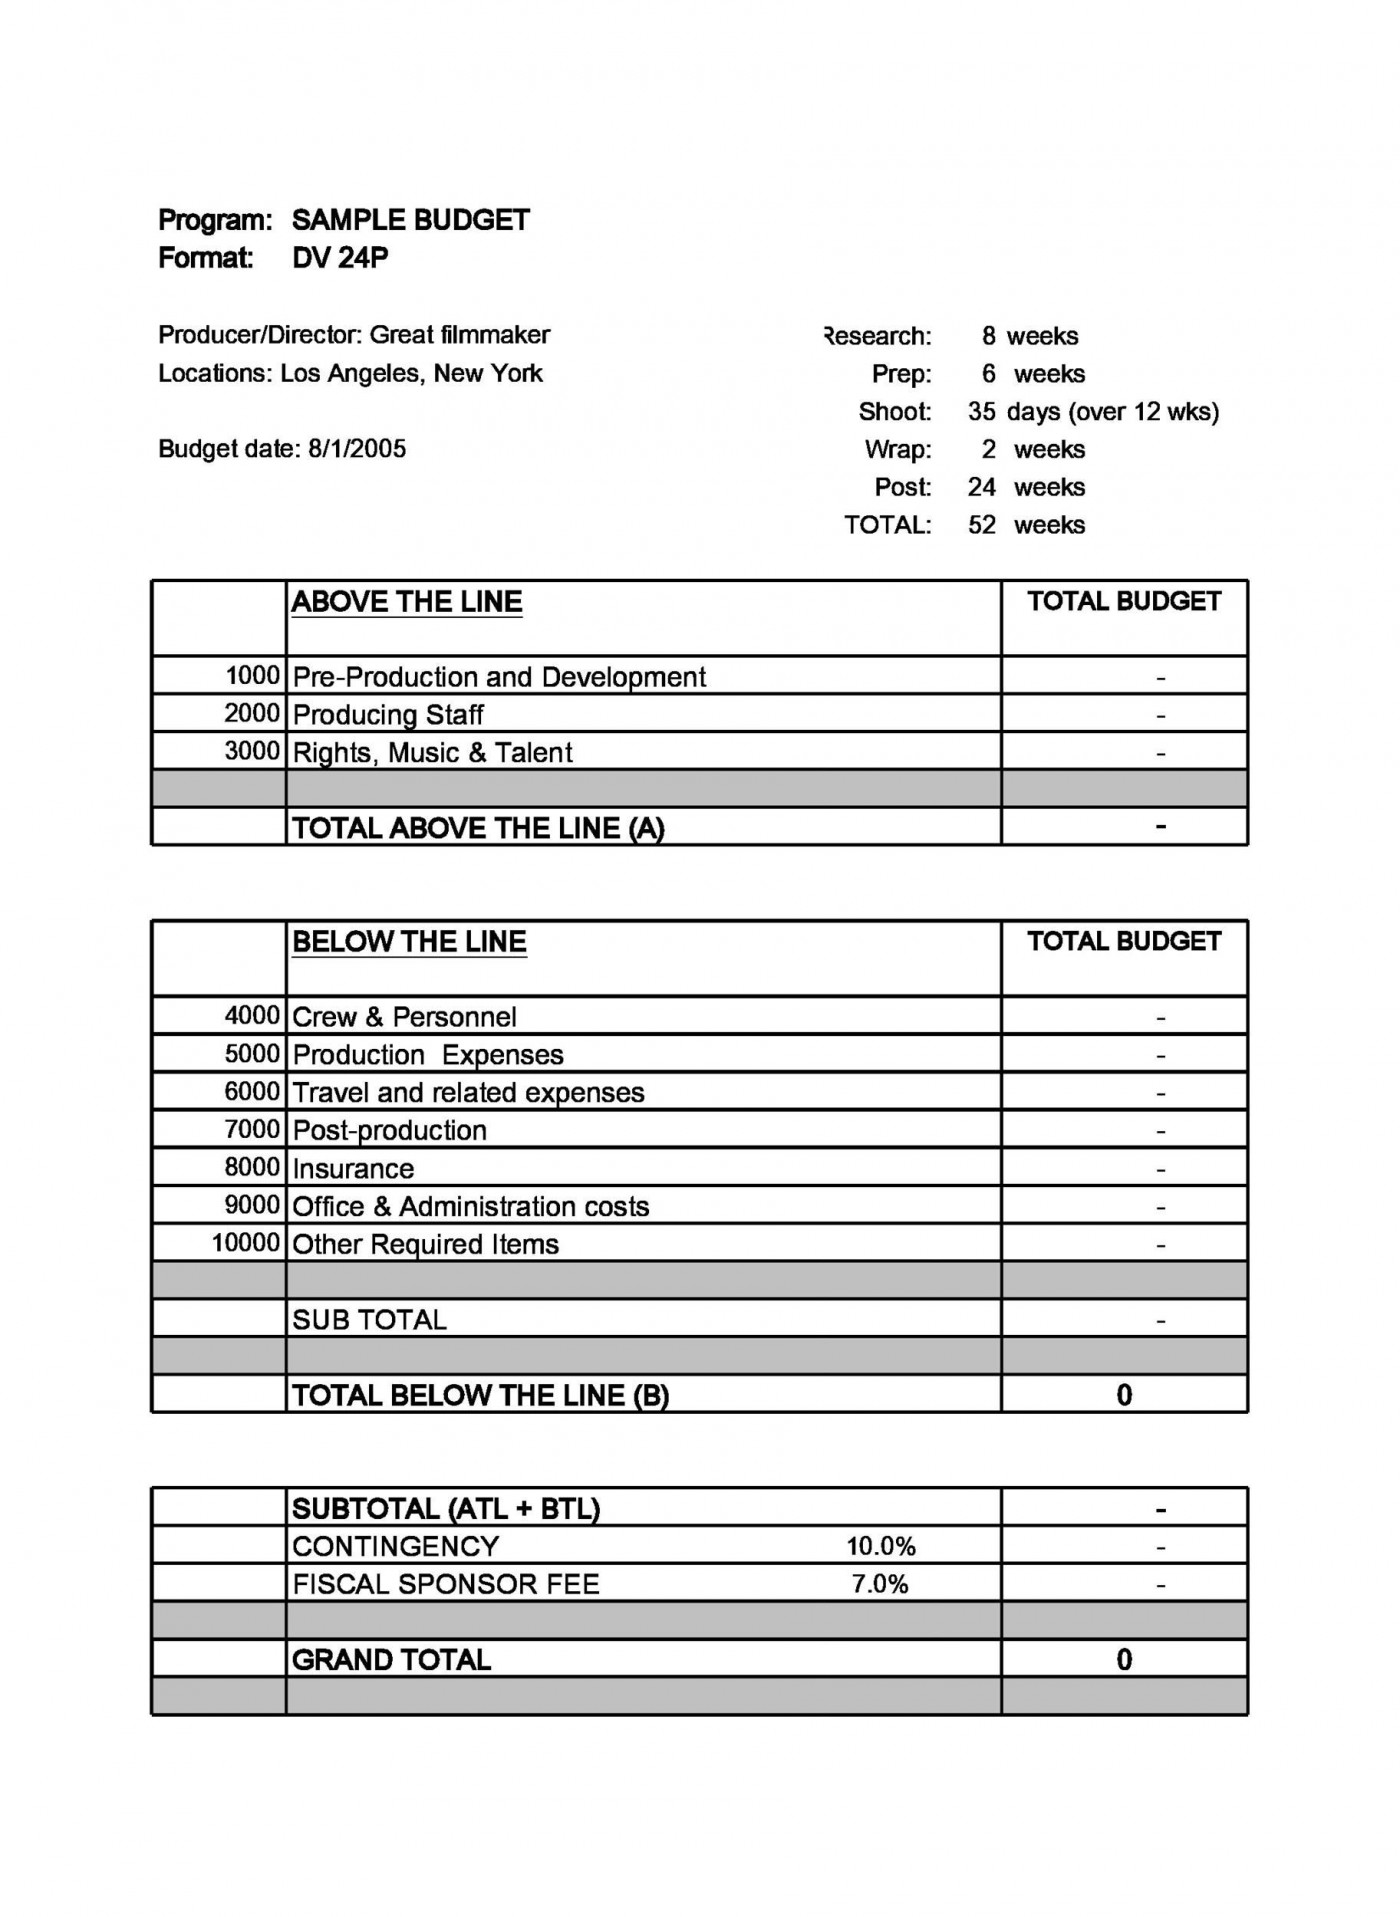 004 Magnificent Line Item Budget Example Image  Format Meaning With1400